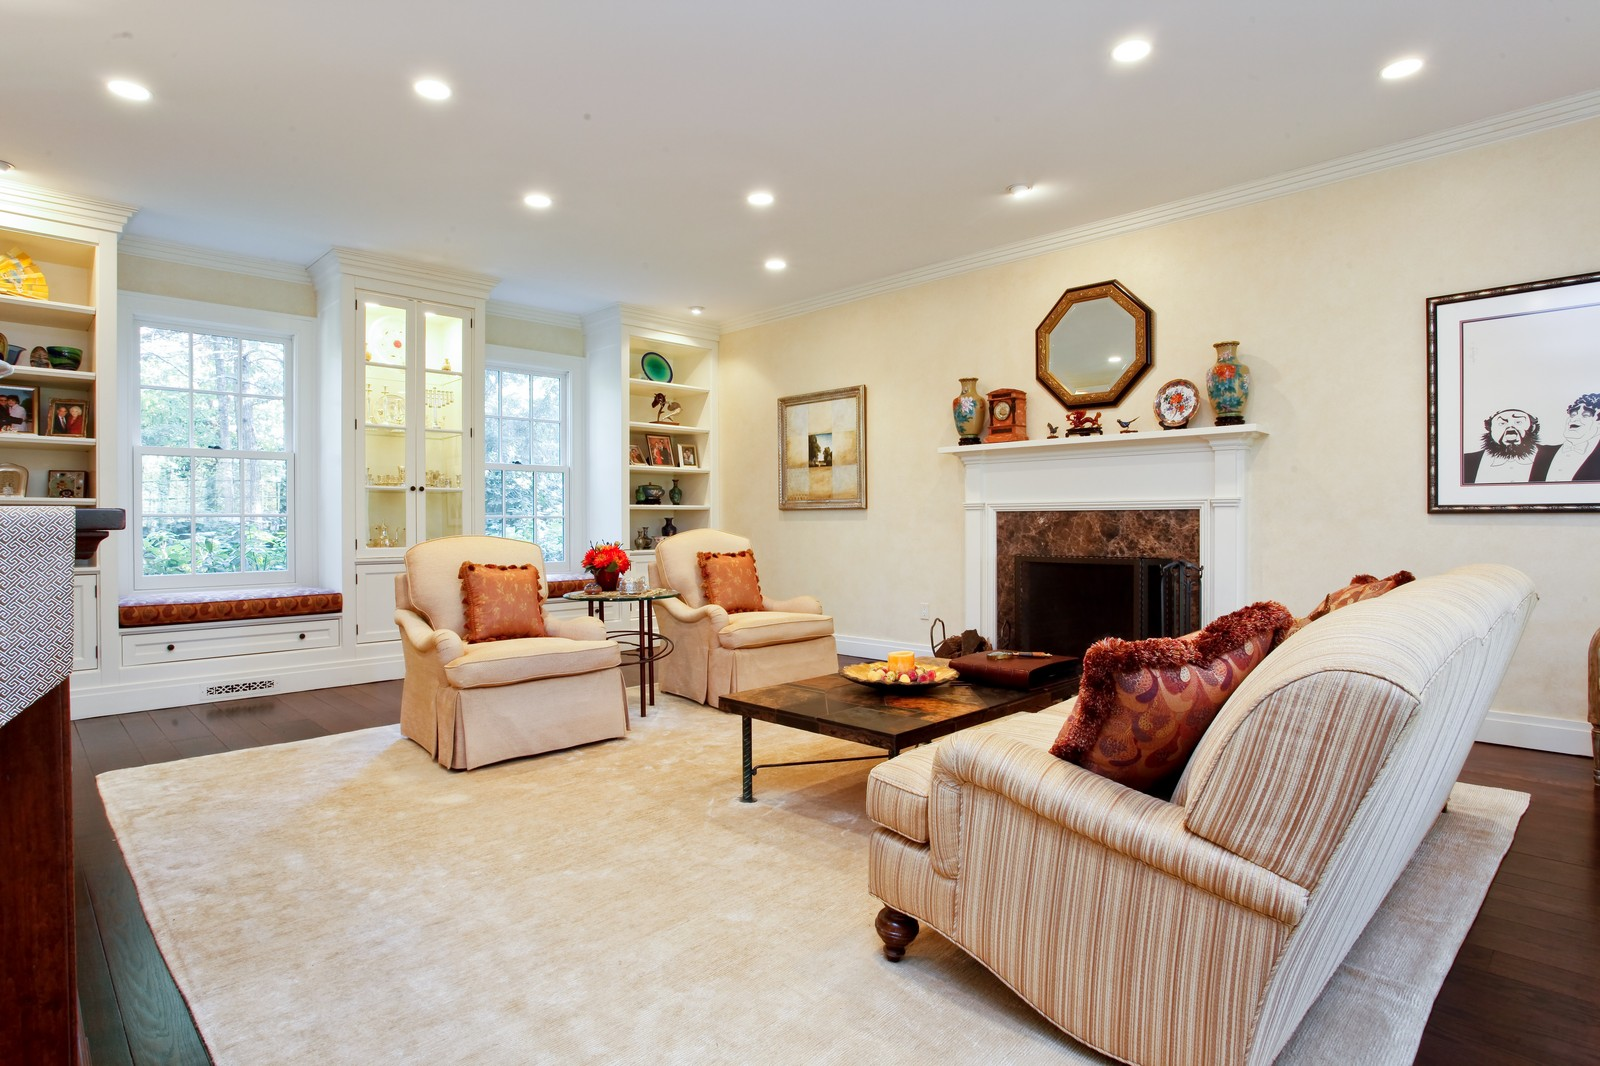 Real Estate Photography - 30 Hadden Rd, Scarsdale, NY, 10583 - Living Room